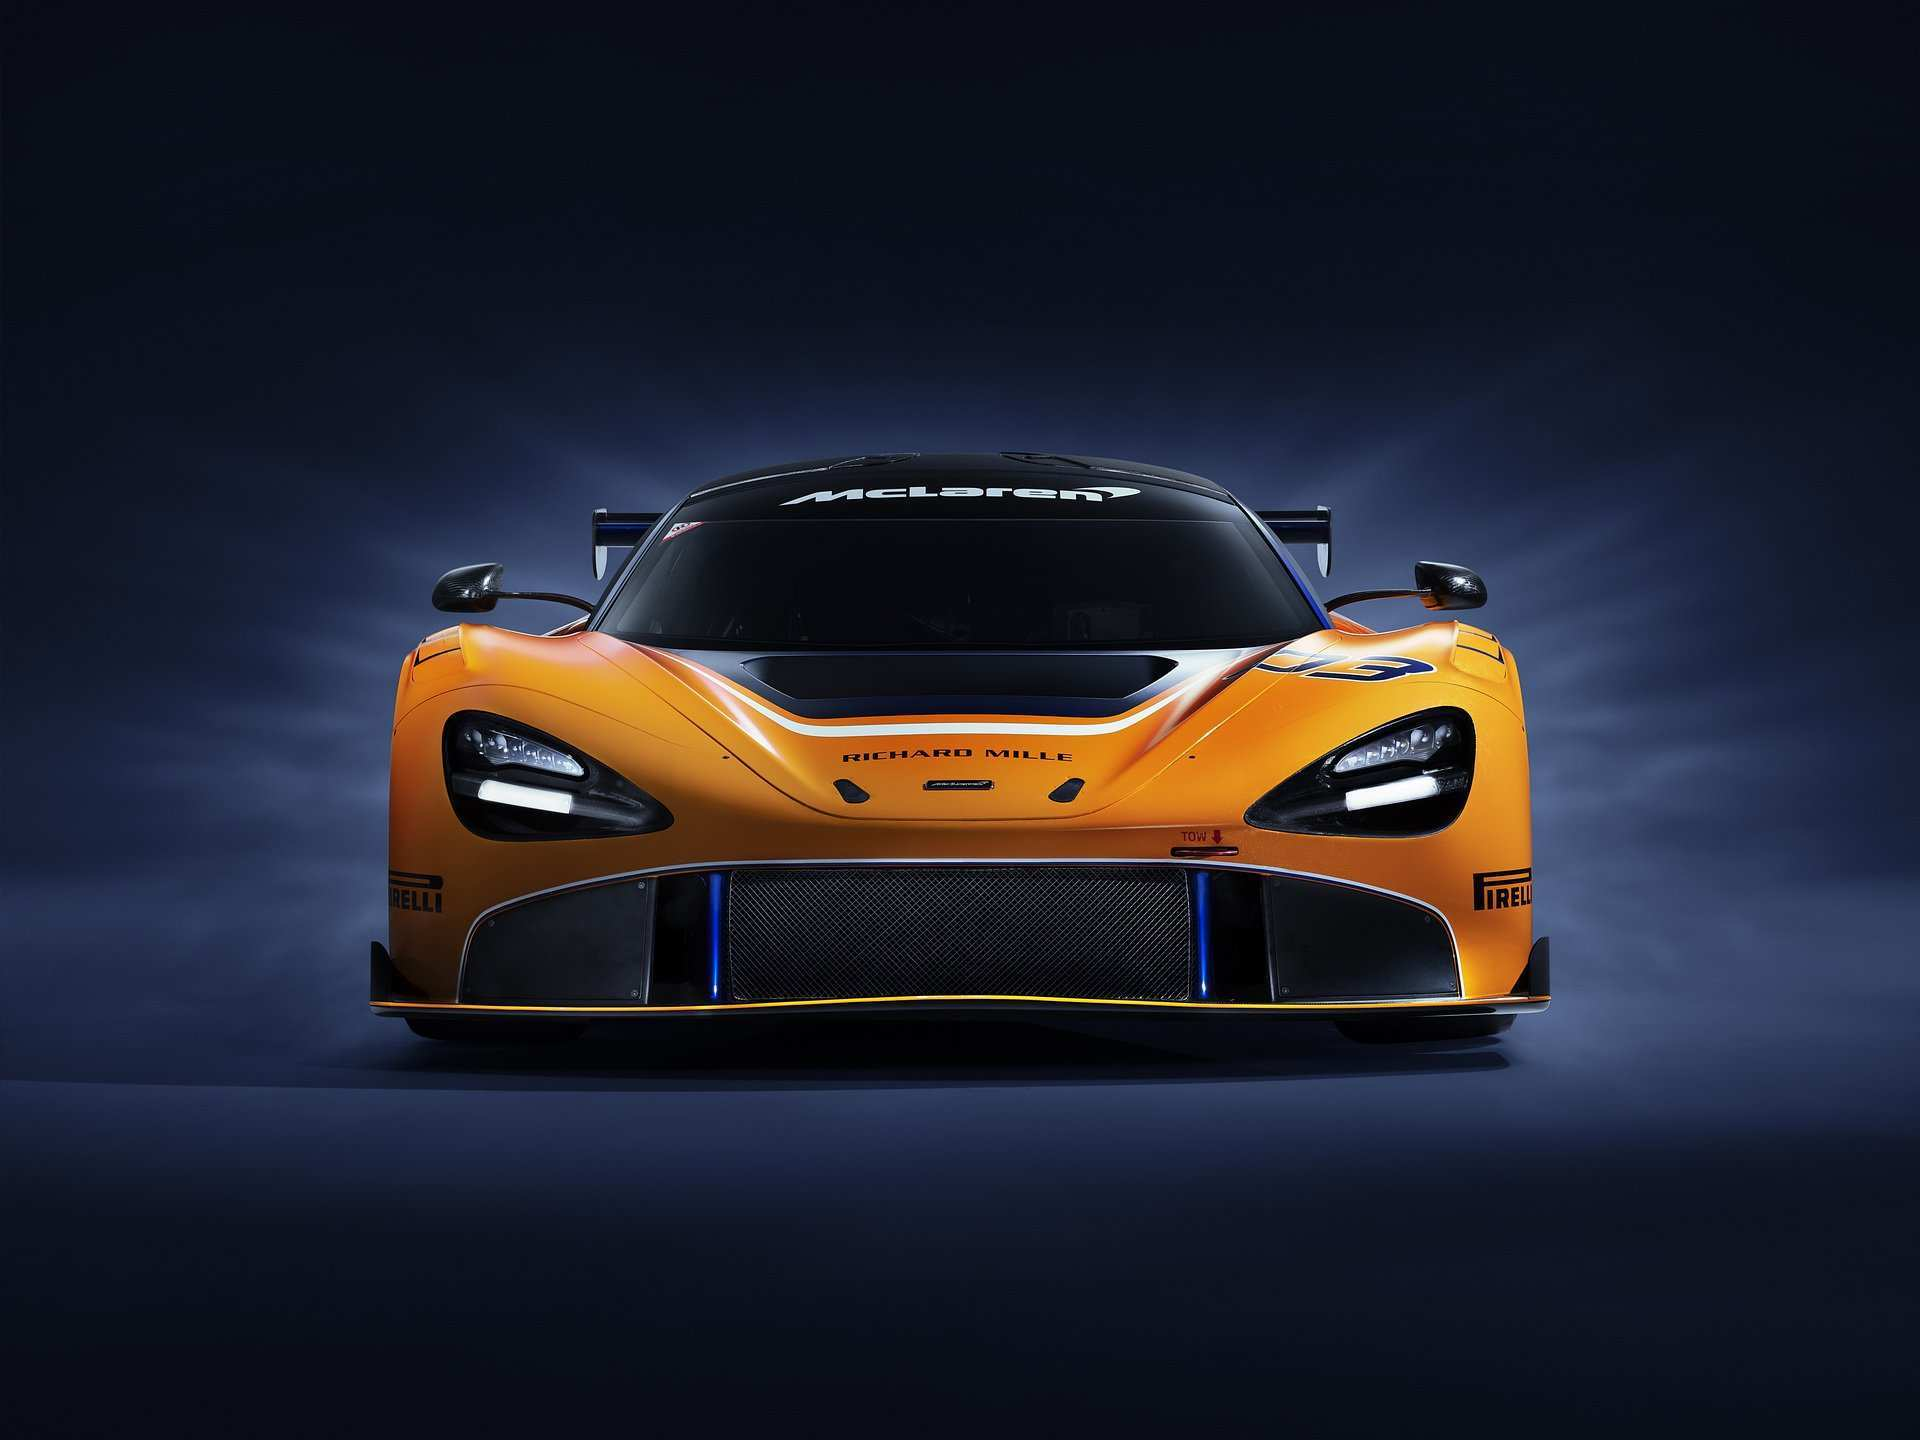 84 Concept of 2019 Mclaren 720S Gt3 Performance by 2019 Mclaren 720S Gt3